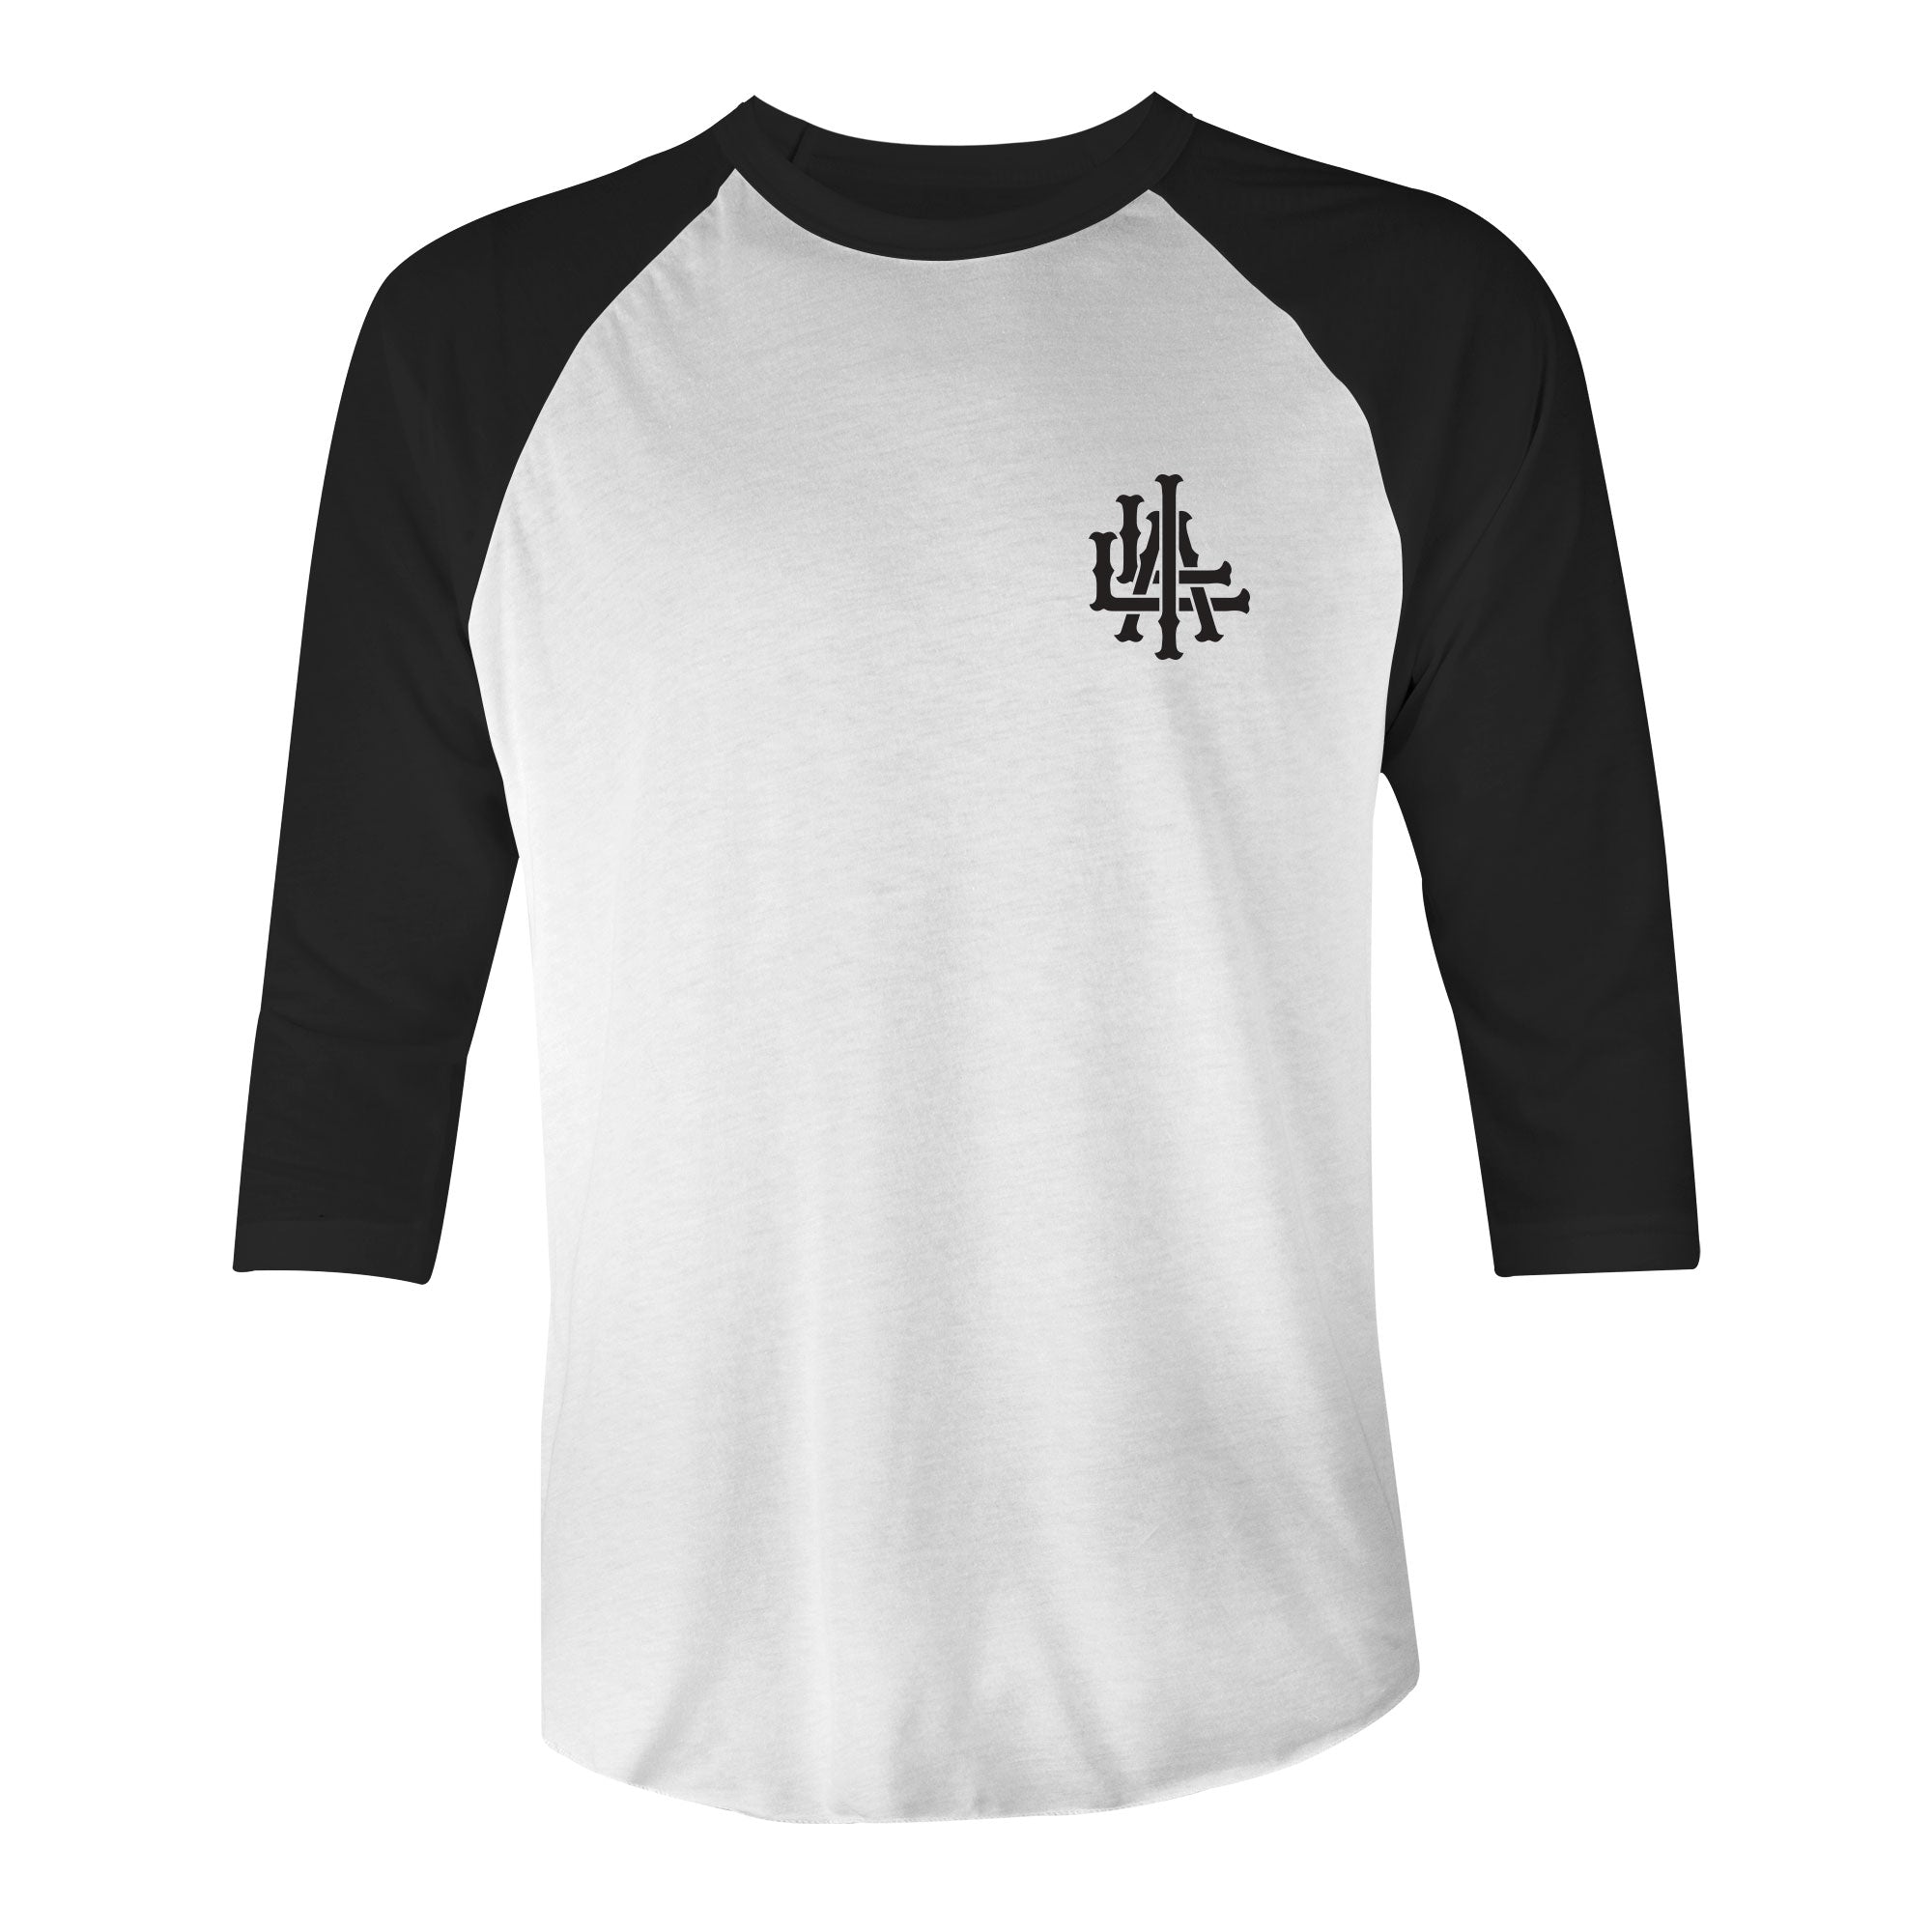 Permanent Vacation Raglan Baseball Tee - White/Black